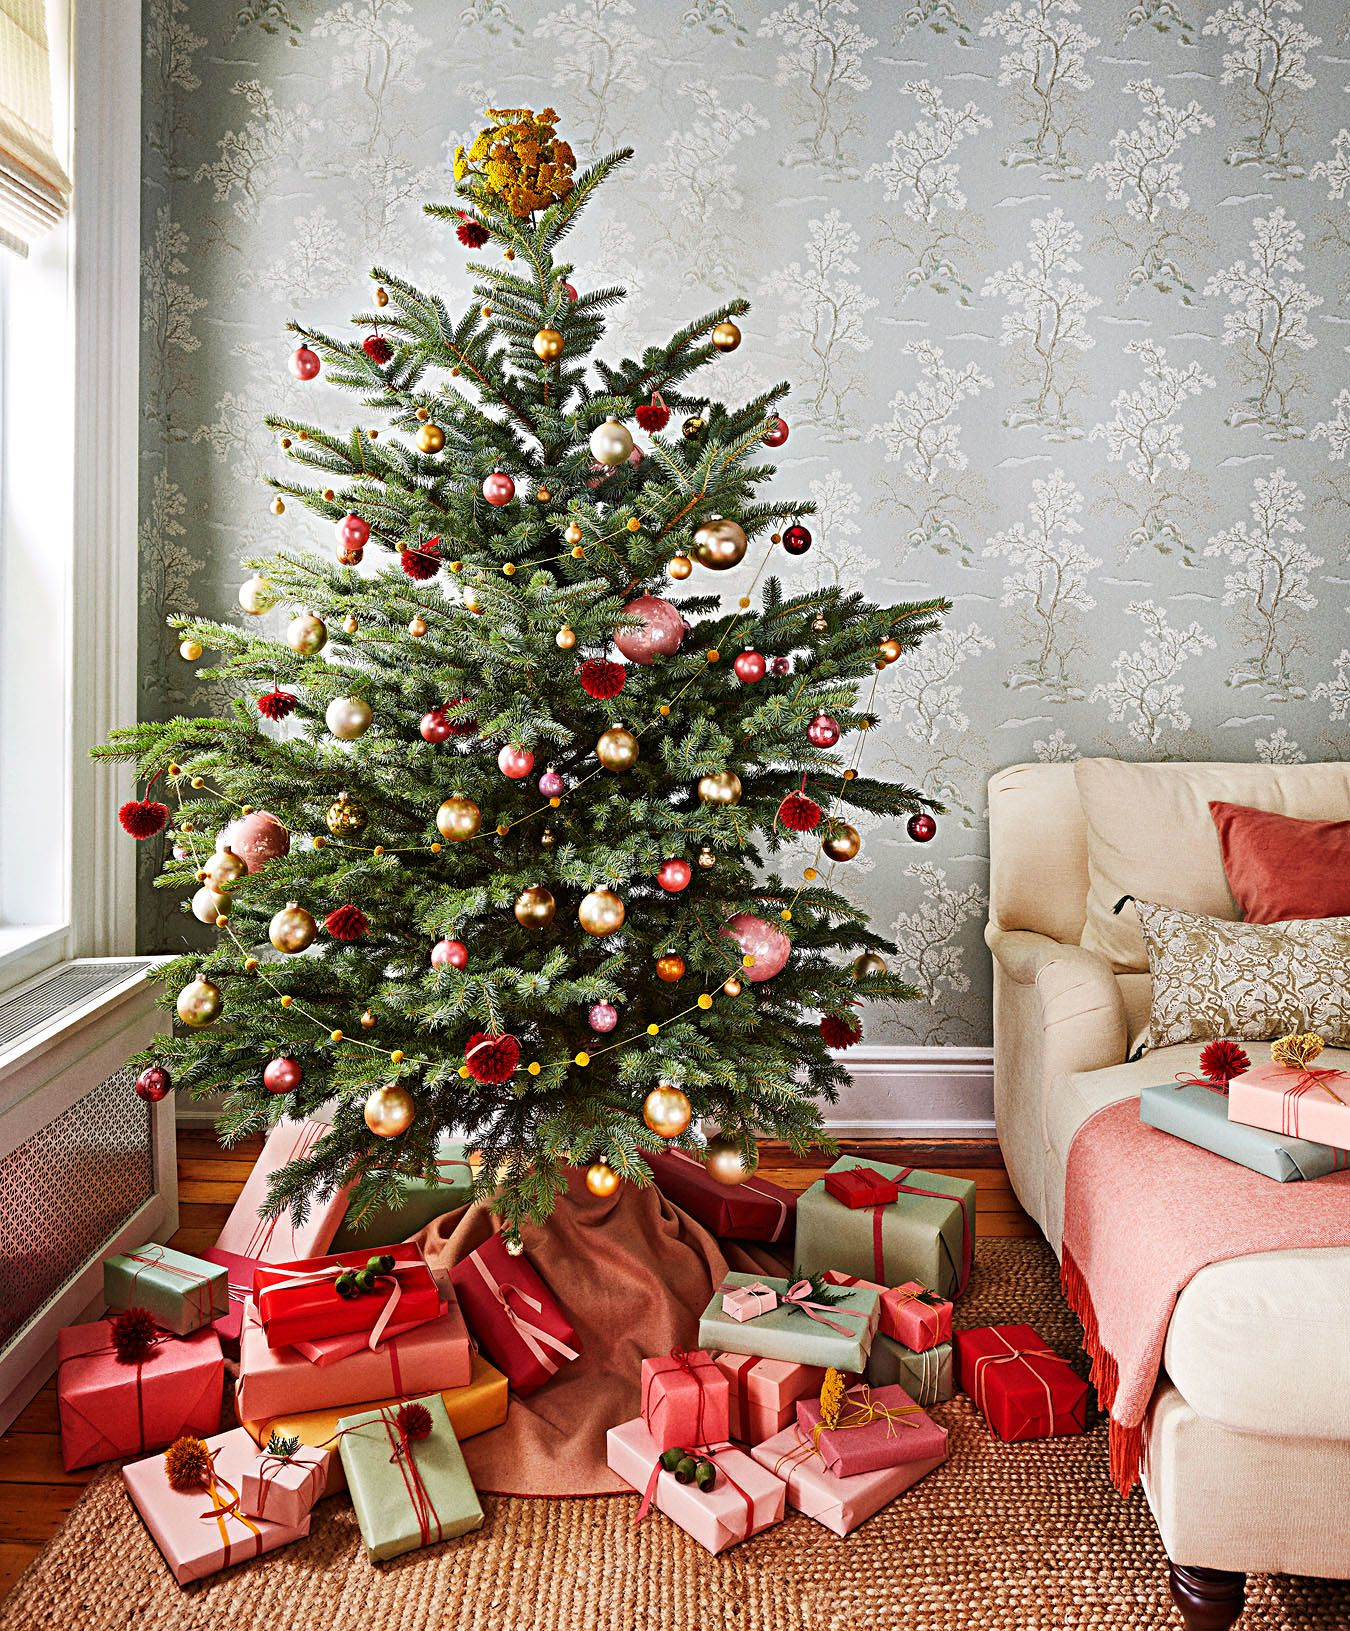 Try This Putting Holiday Decorations Up Early Can Make You Happier Christmas Tree Home Depot Christmas Table Decorations Creative Christmas Trees